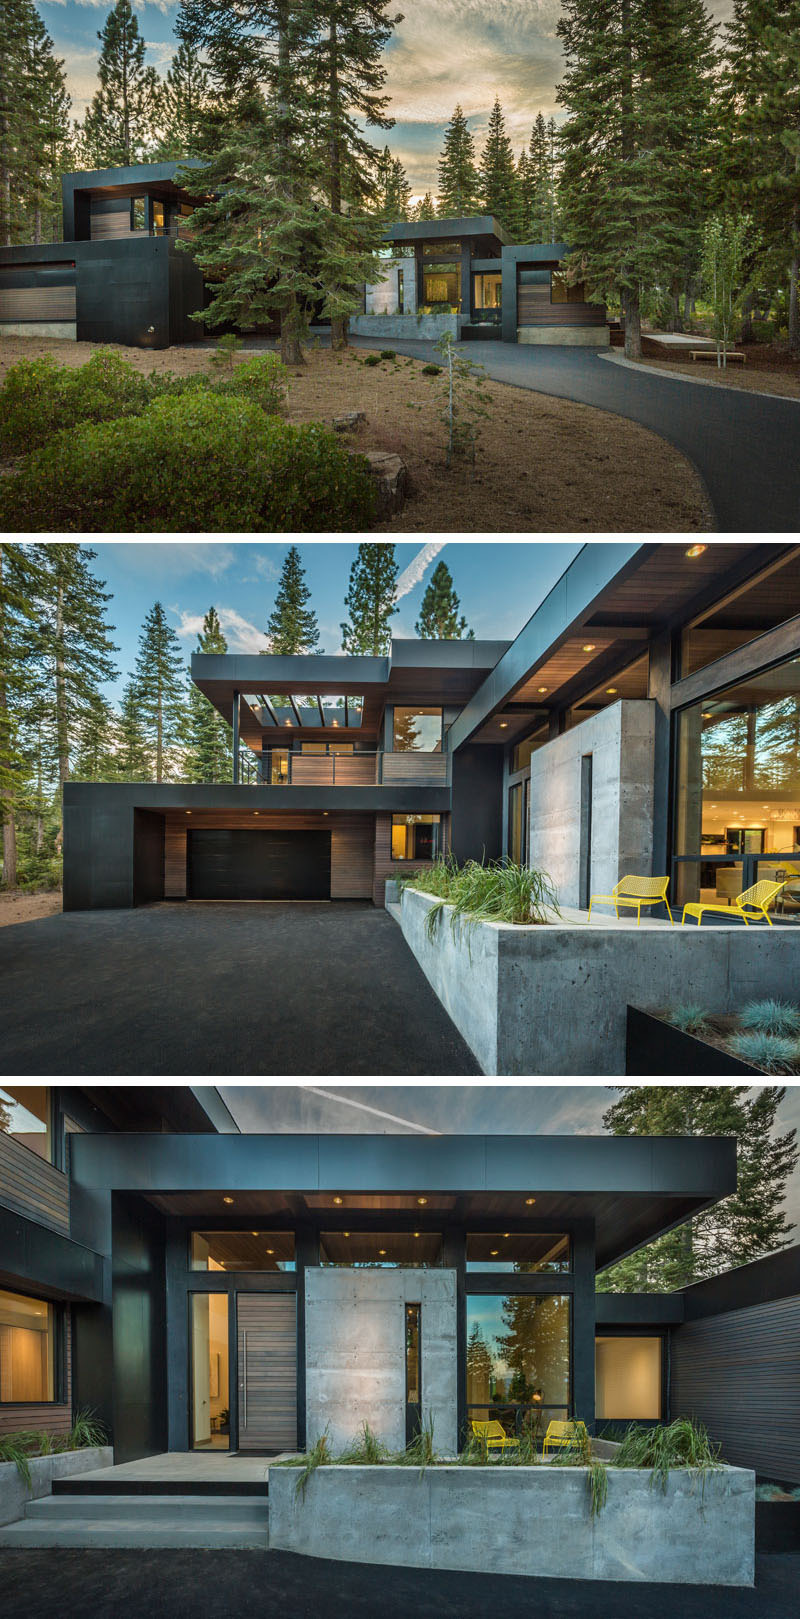 All Black Modern House New 15 Modern Houses to Make You Feel at Home In the forest